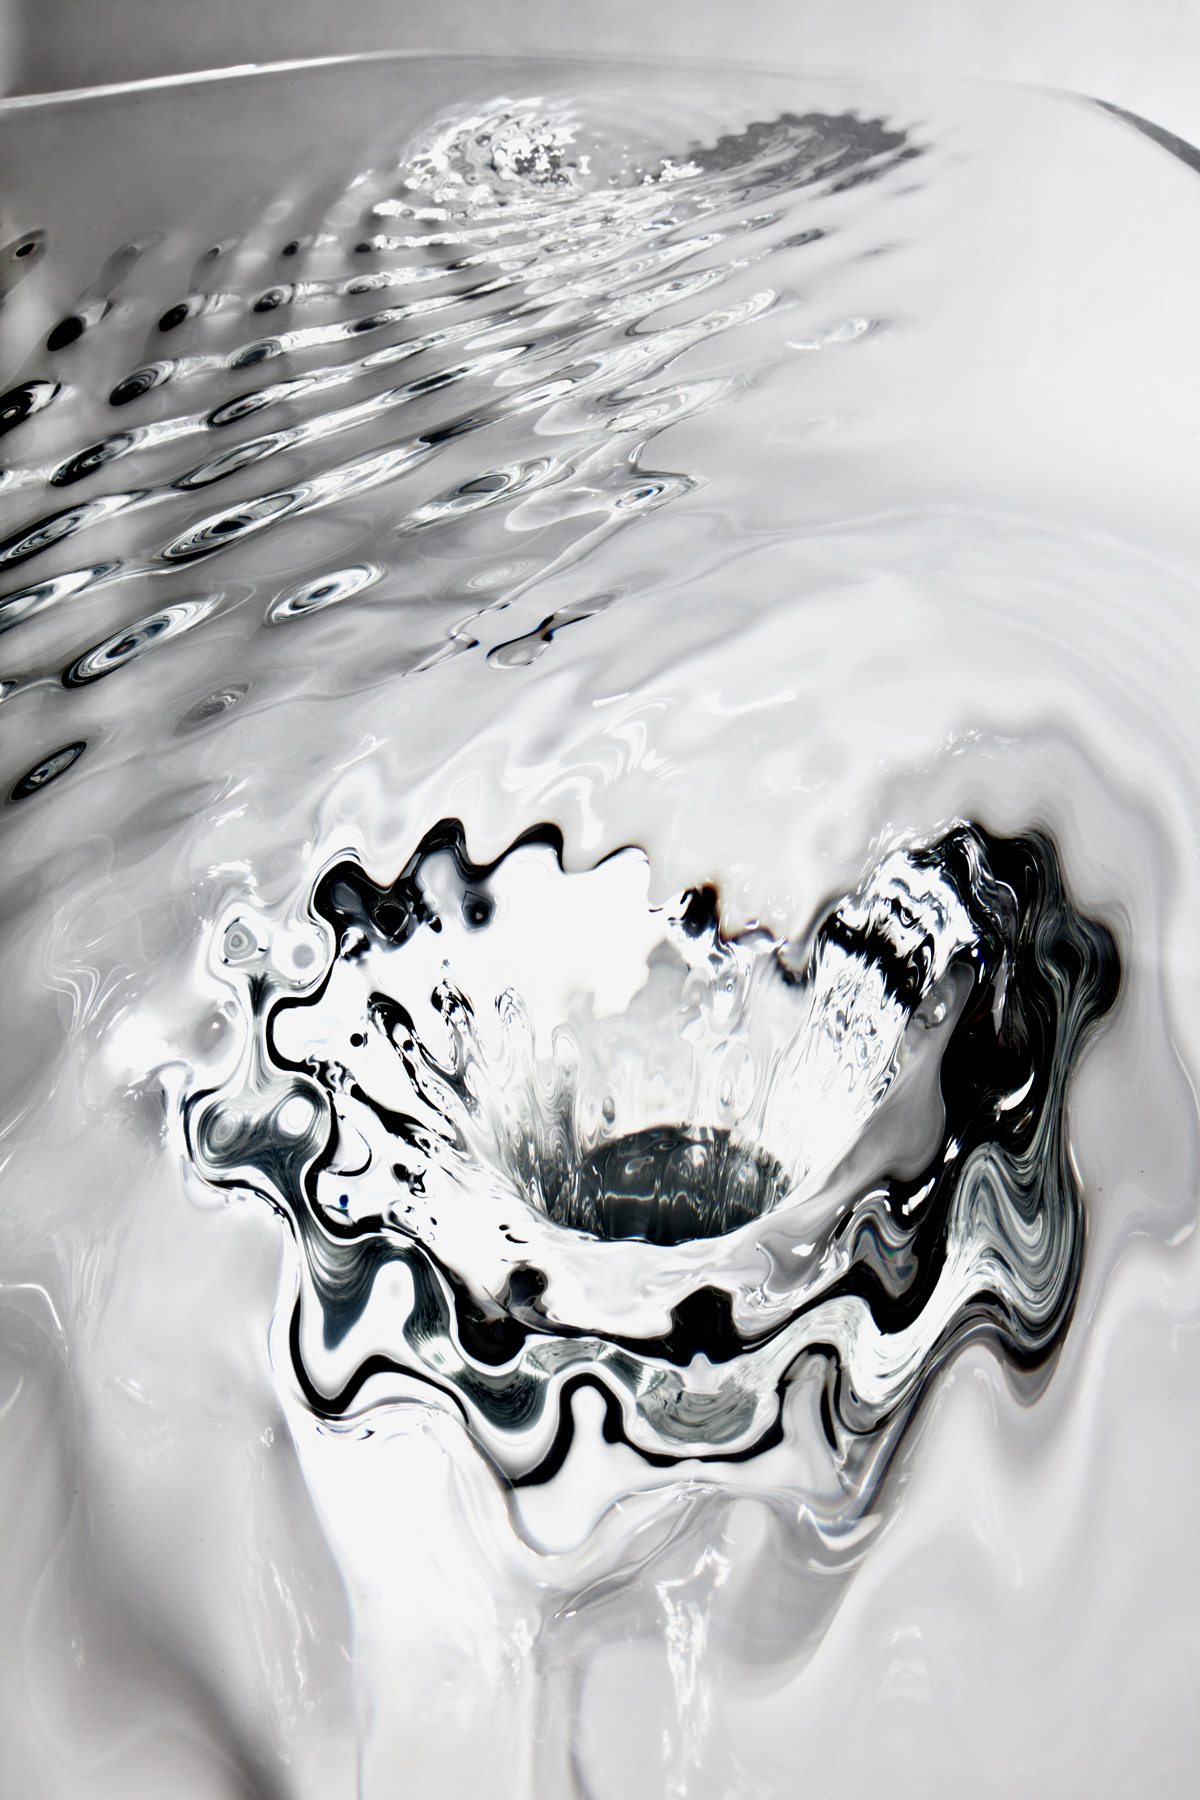 Rippling water tables by zaha hadid twistedsifter for Zaha hadid liquid glacial